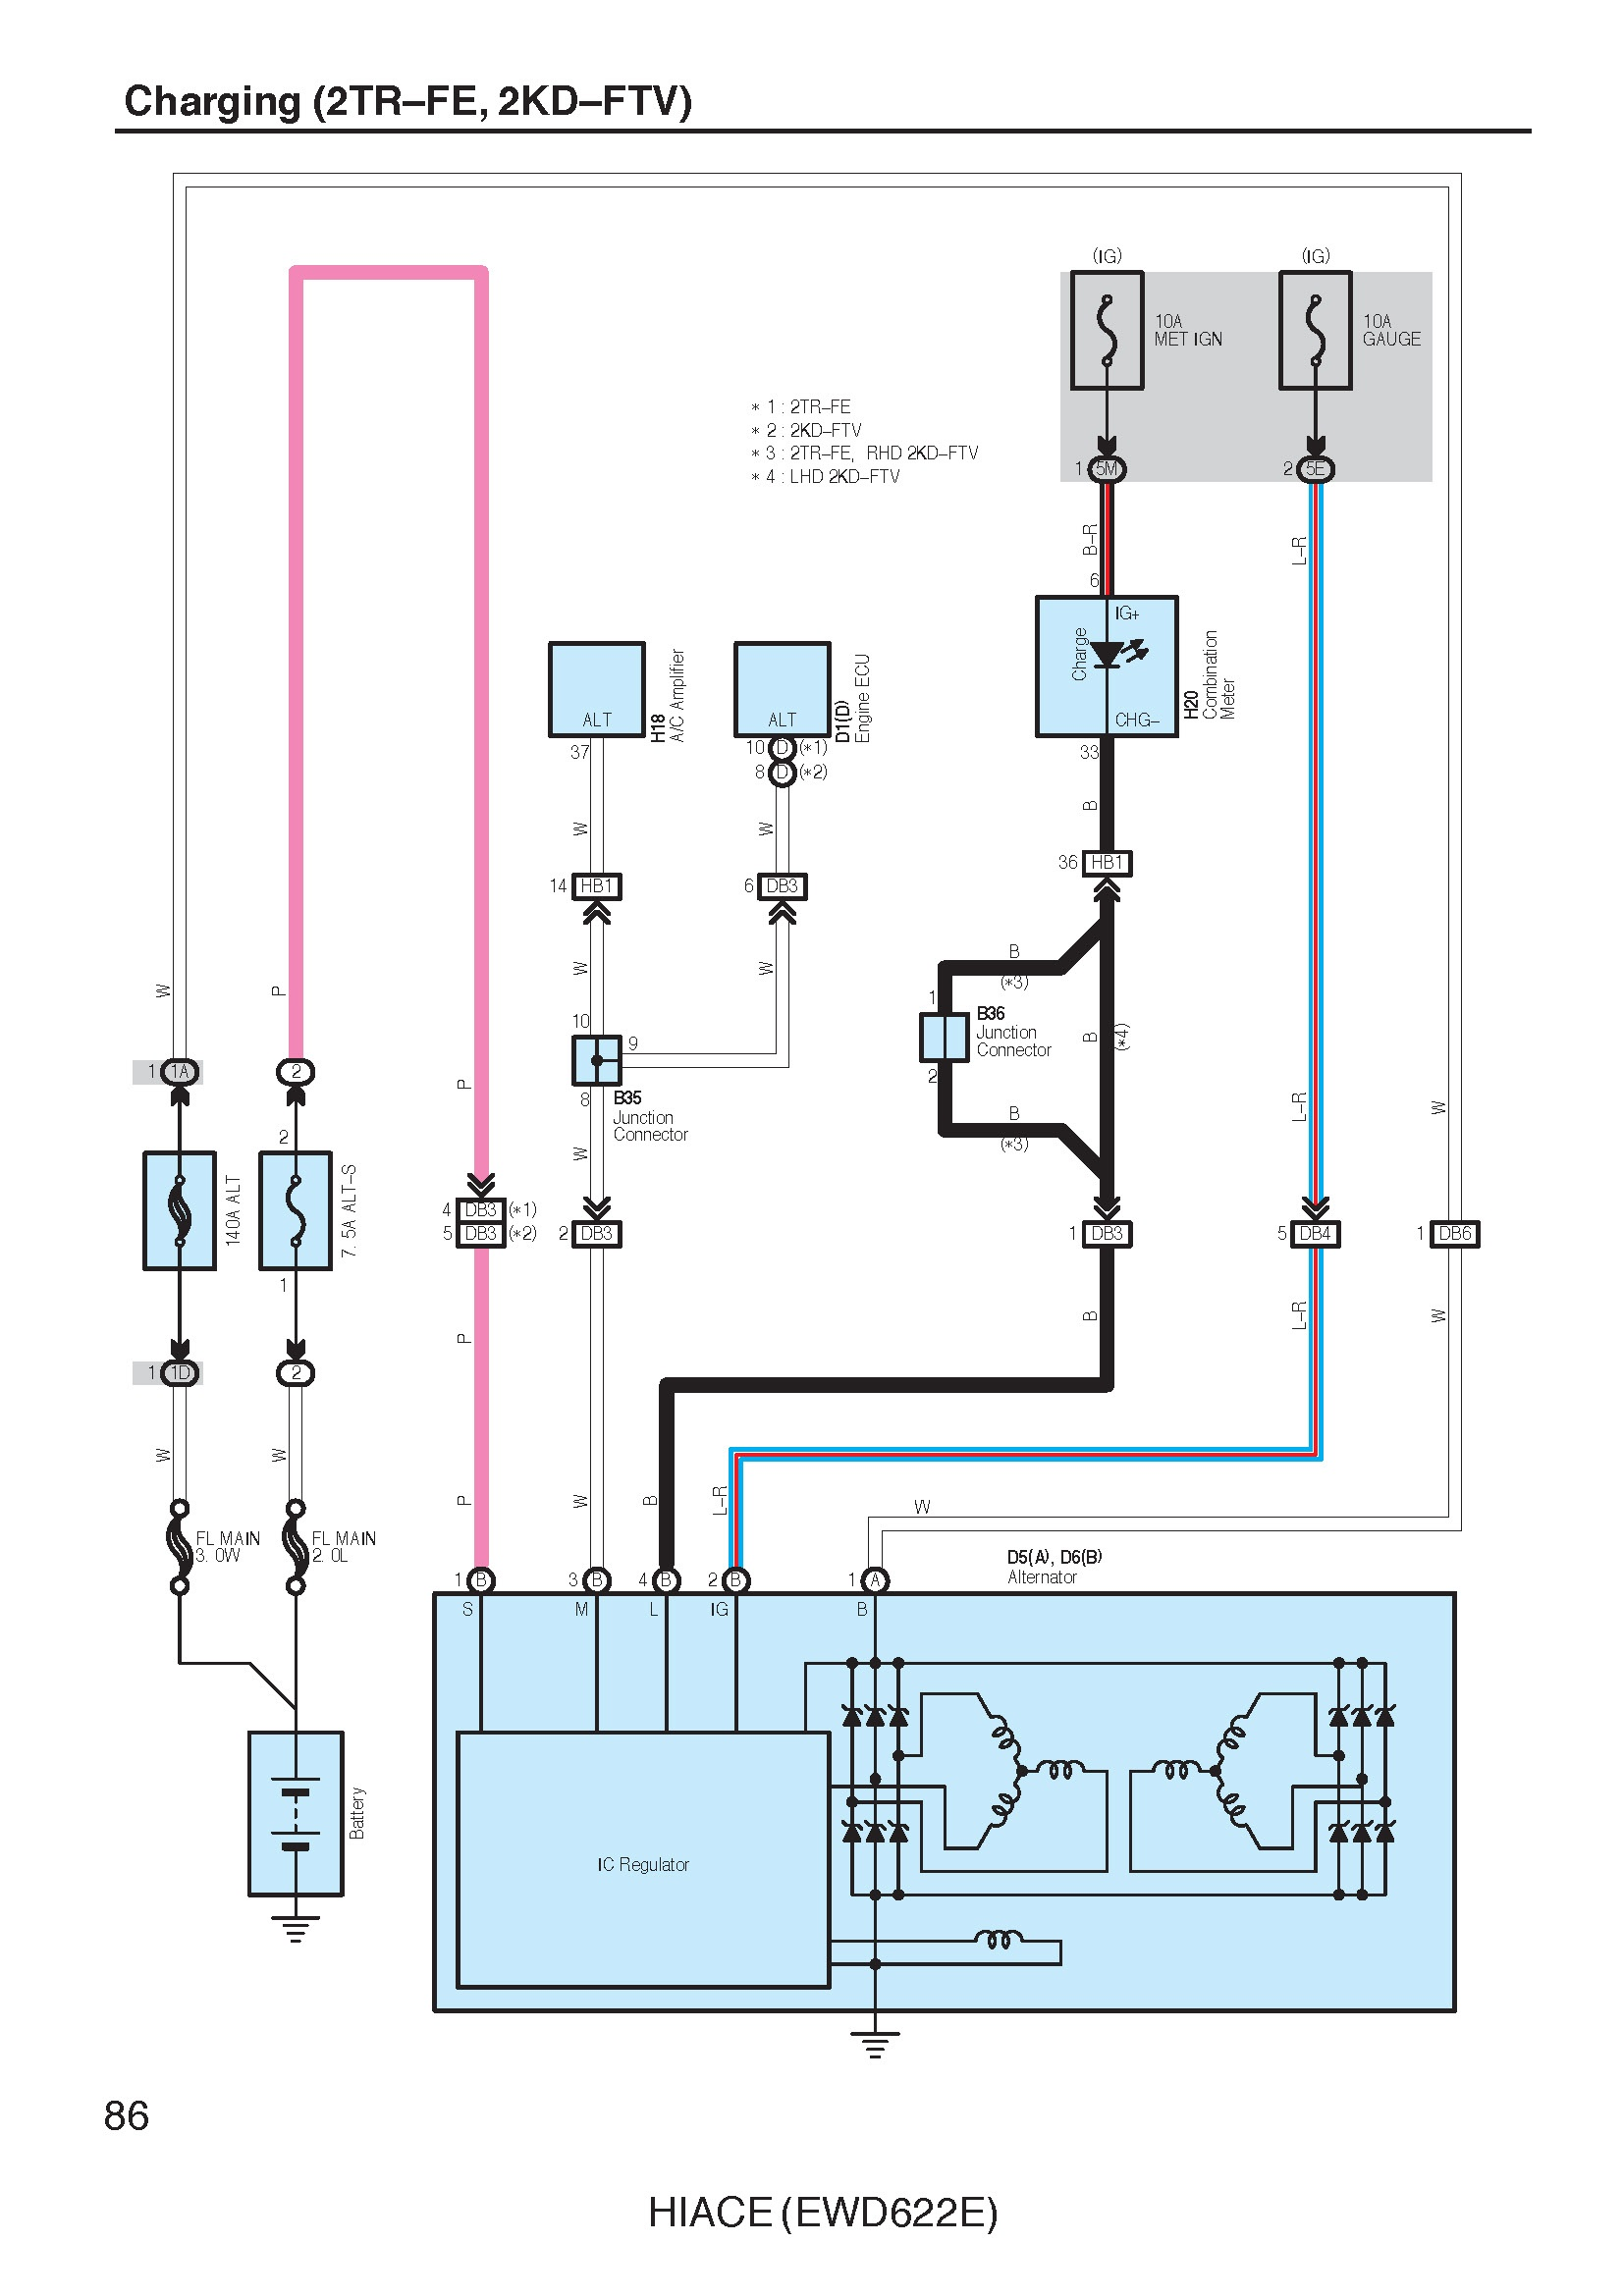 2006 Toyota Hiace Electrical Wiring Diagrams  Pdf